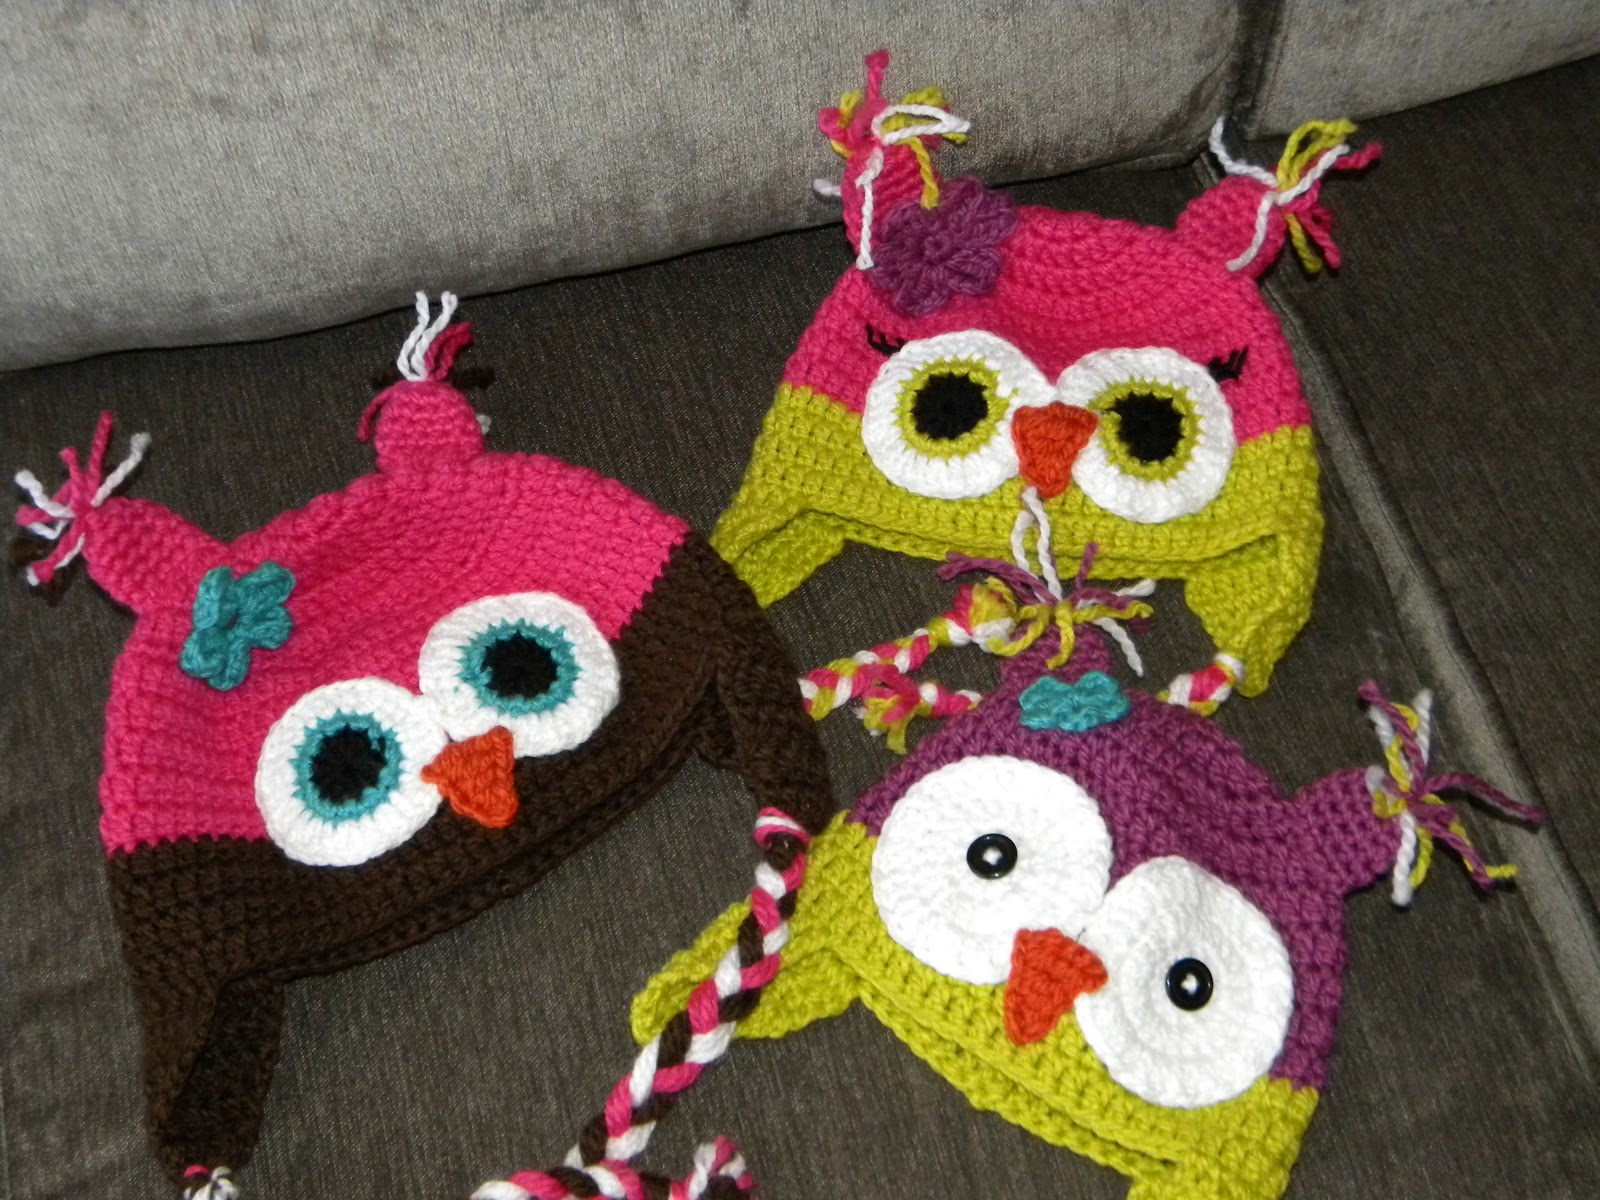 Crochet Pattern For Newborn Owl Hat : Knotty Knotty Crochet: Hoot Hoot! Owl hat FREE PATTERN!!